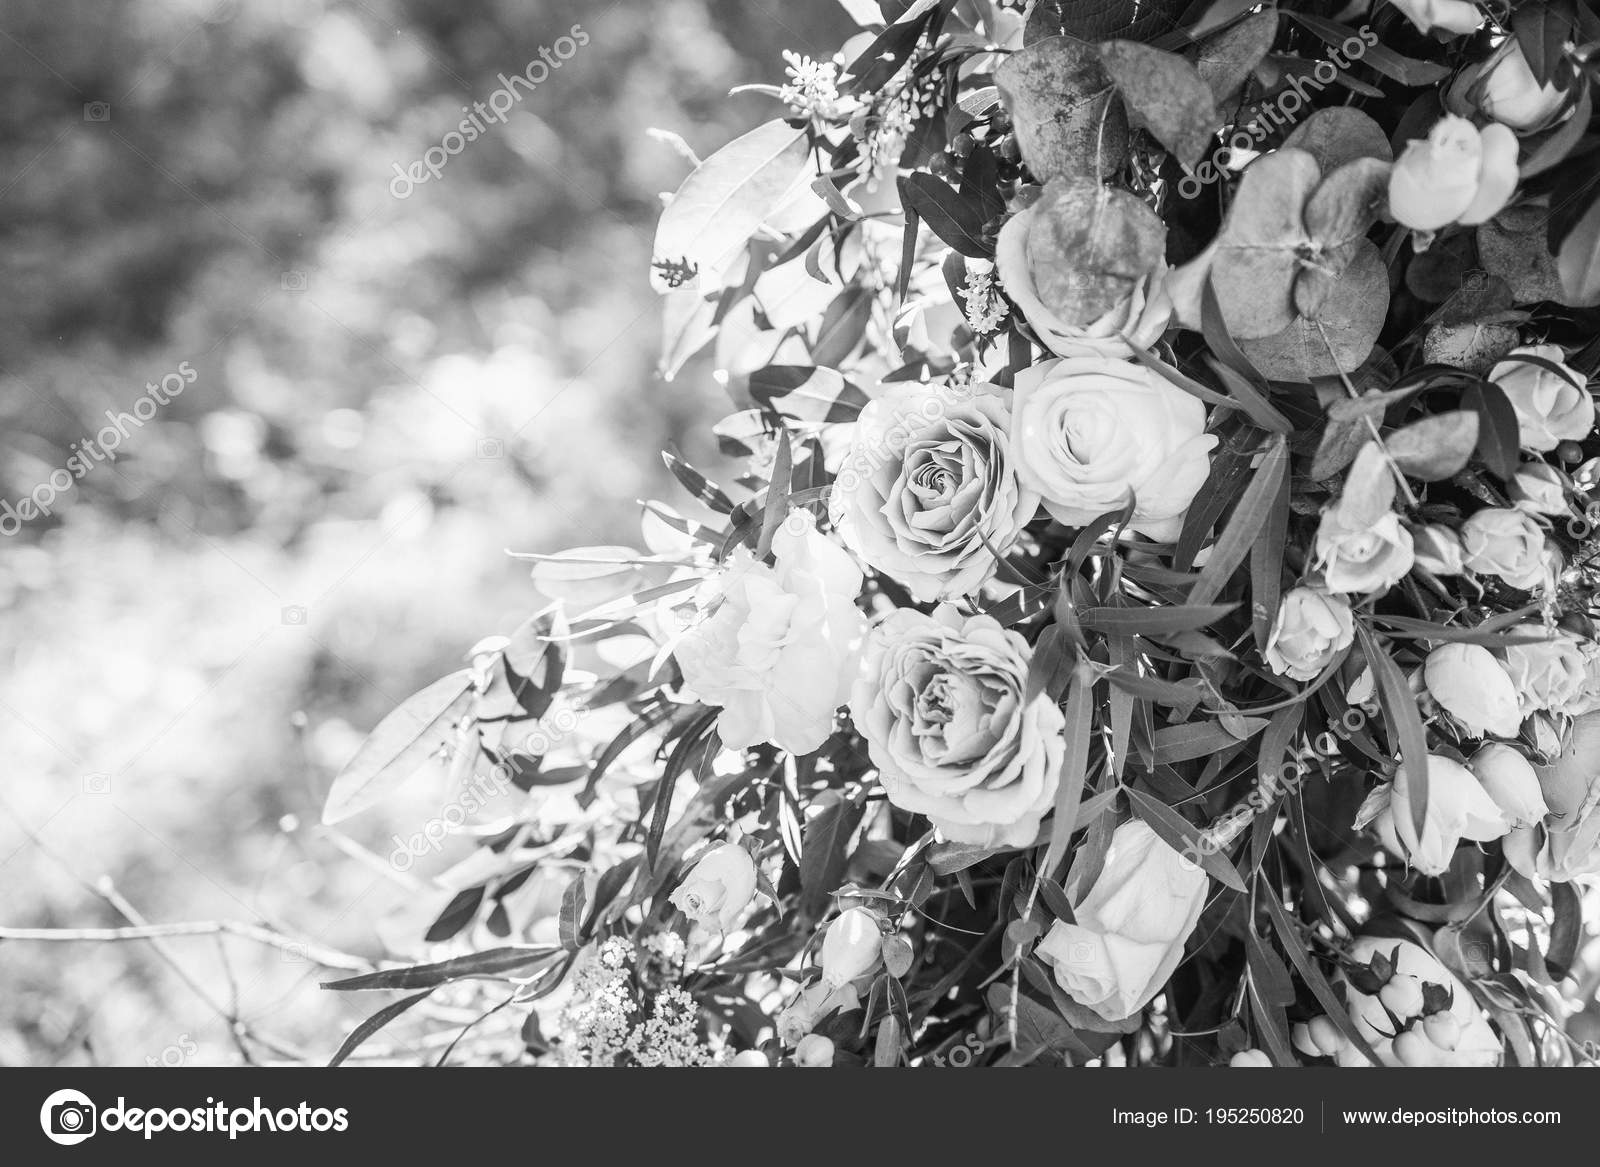 Awesome Black And White Wedding Decorations Cheap Image - Wedding ...